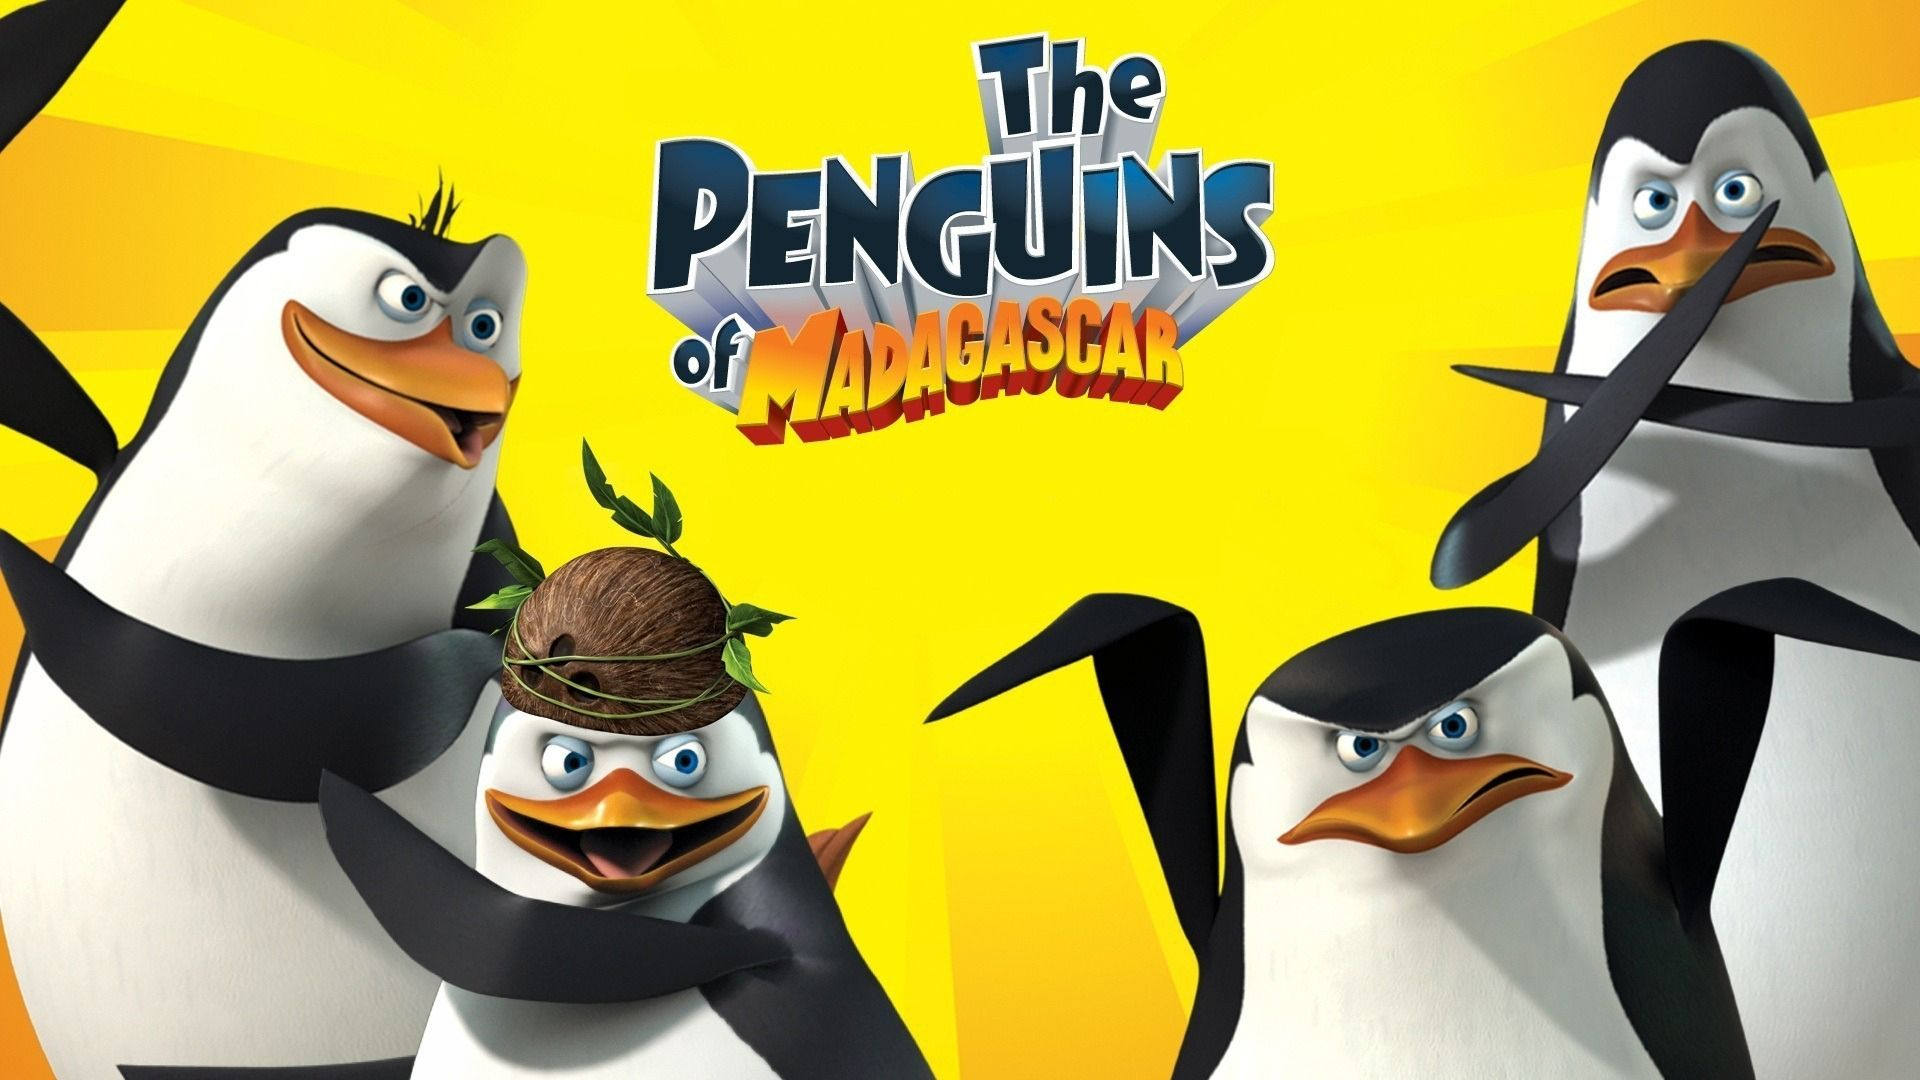 the penguins of madagascar movie wallpaper image for phone | all